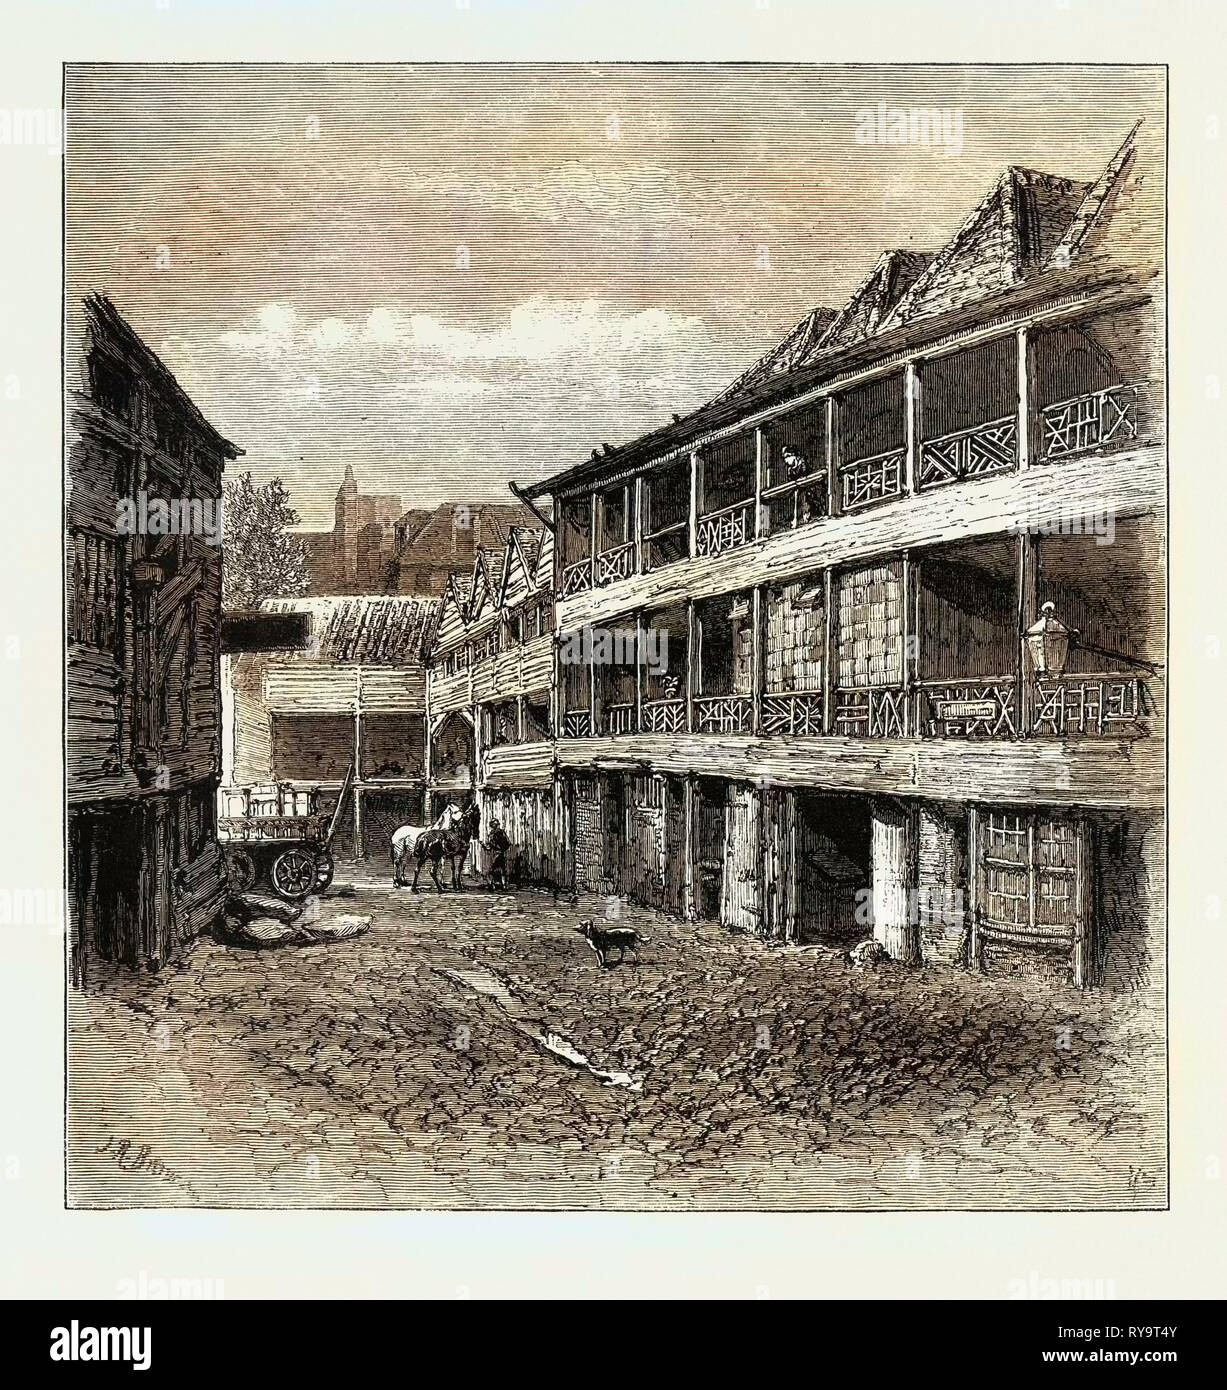 The Old  King's Head  in the Borough Now in Course of Partial Reconstruction, London, UK, Britain, British, Europe, United Kingdom, Great Britain, European, Engraving 1879 - Stock Image